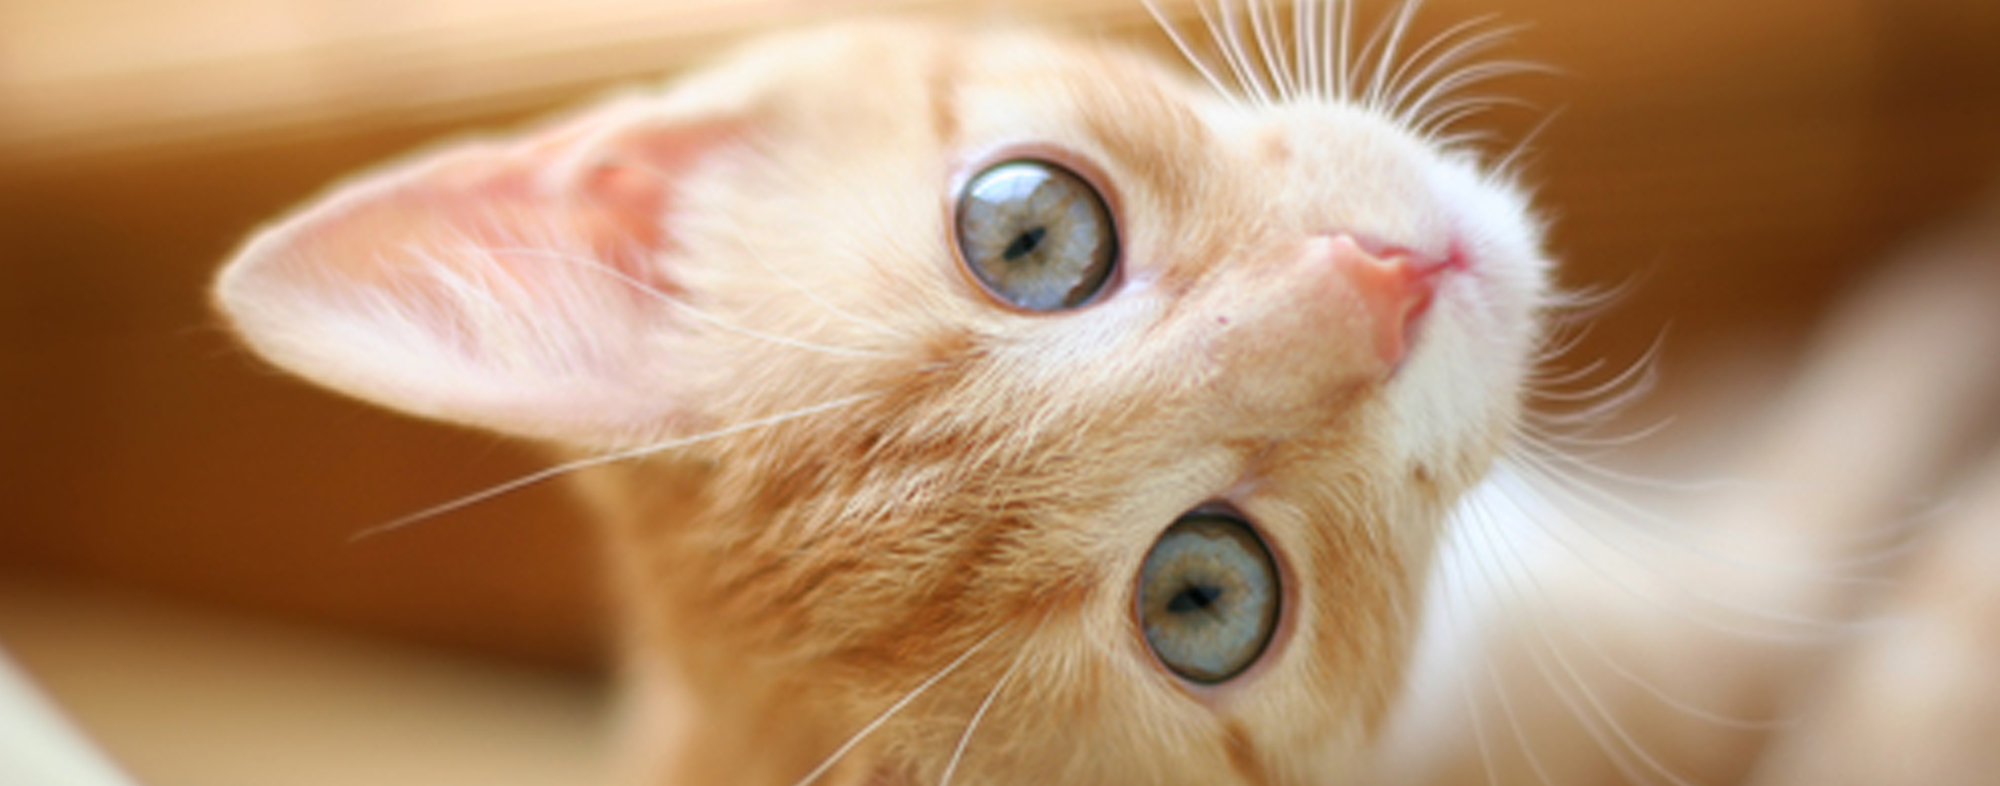 When adopting a kitten, you should consider their breed and sex